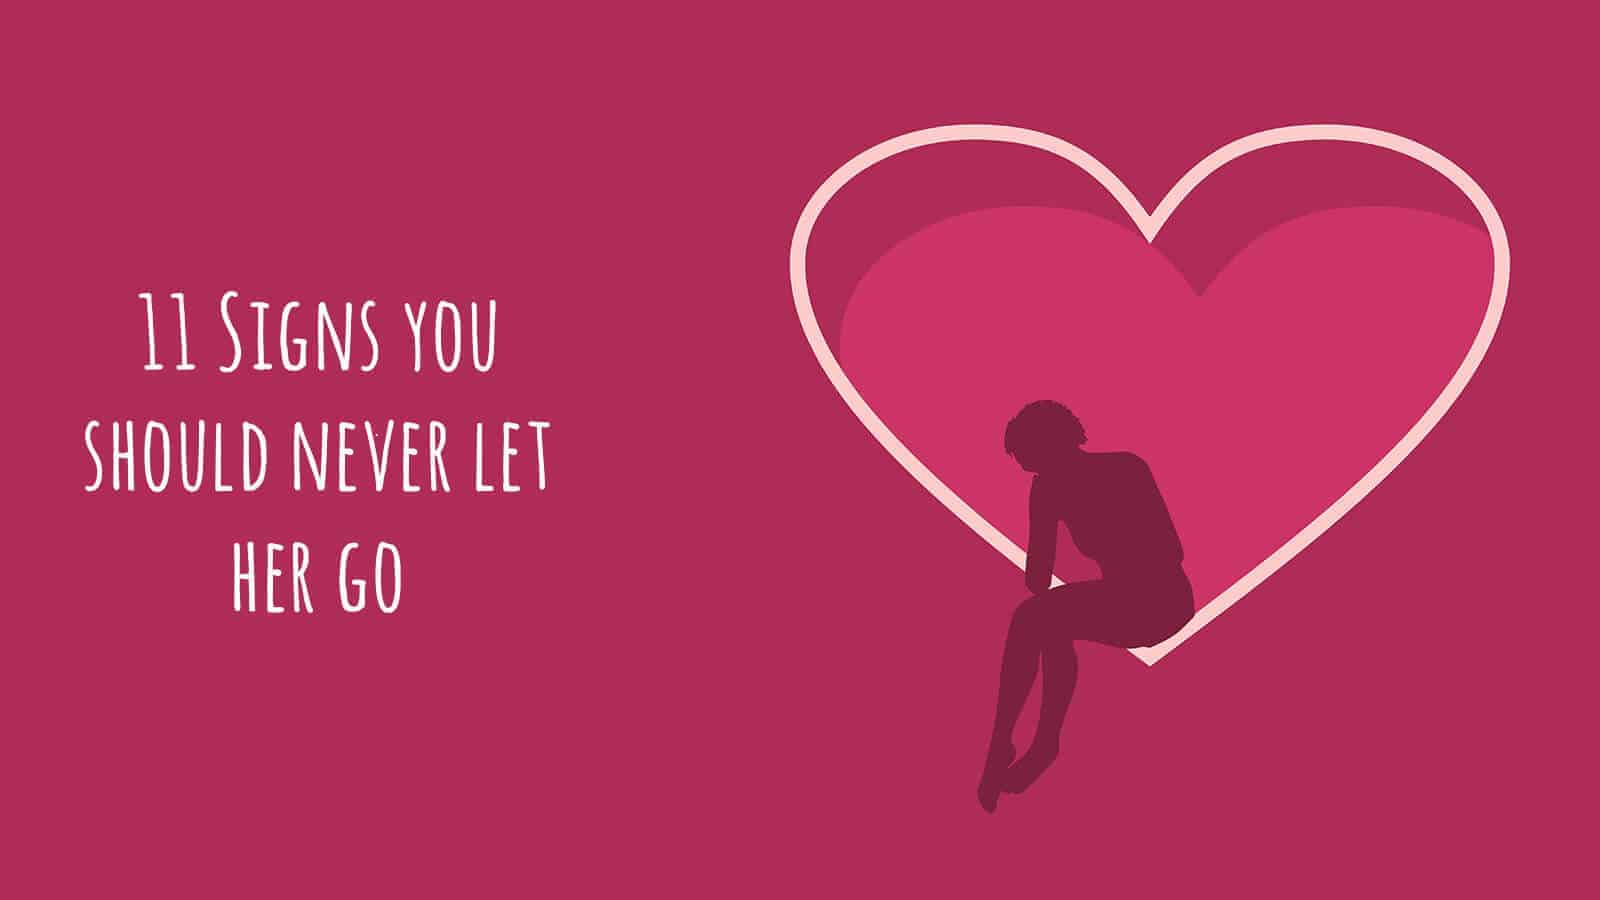 11 Signs you should never let her go